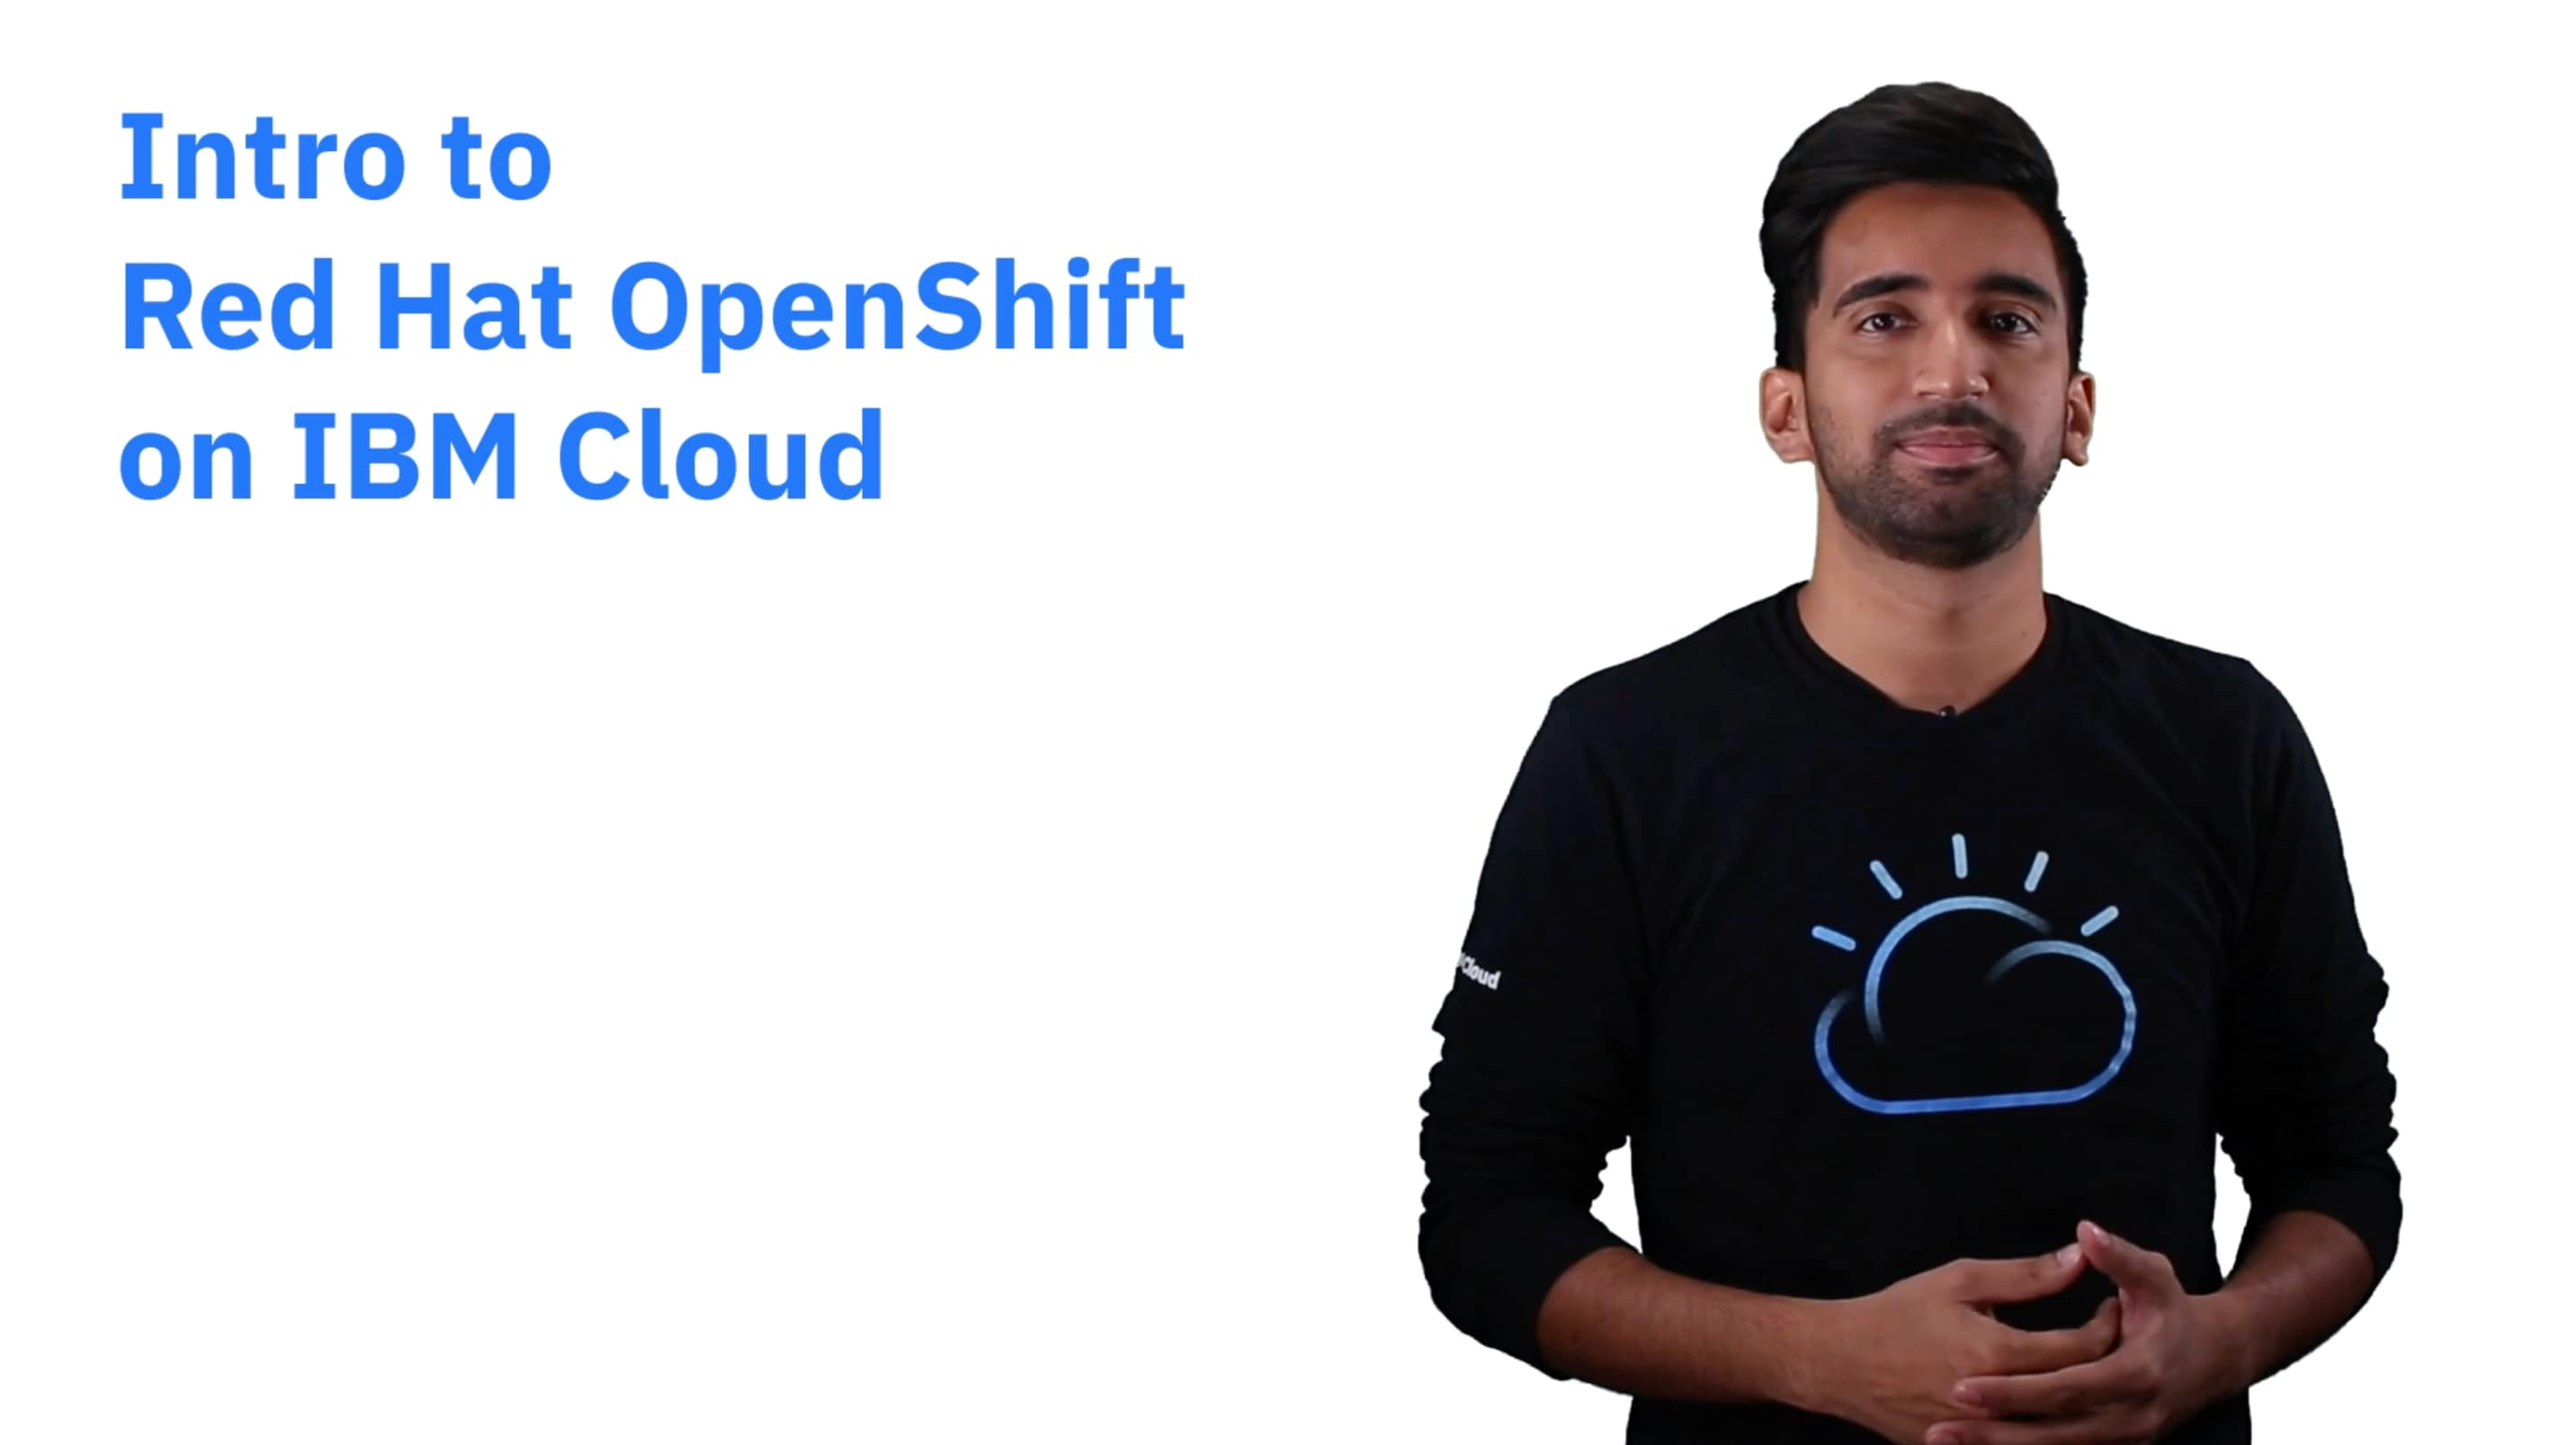 Intro to Red Hat OpenShift on IBM Cloud